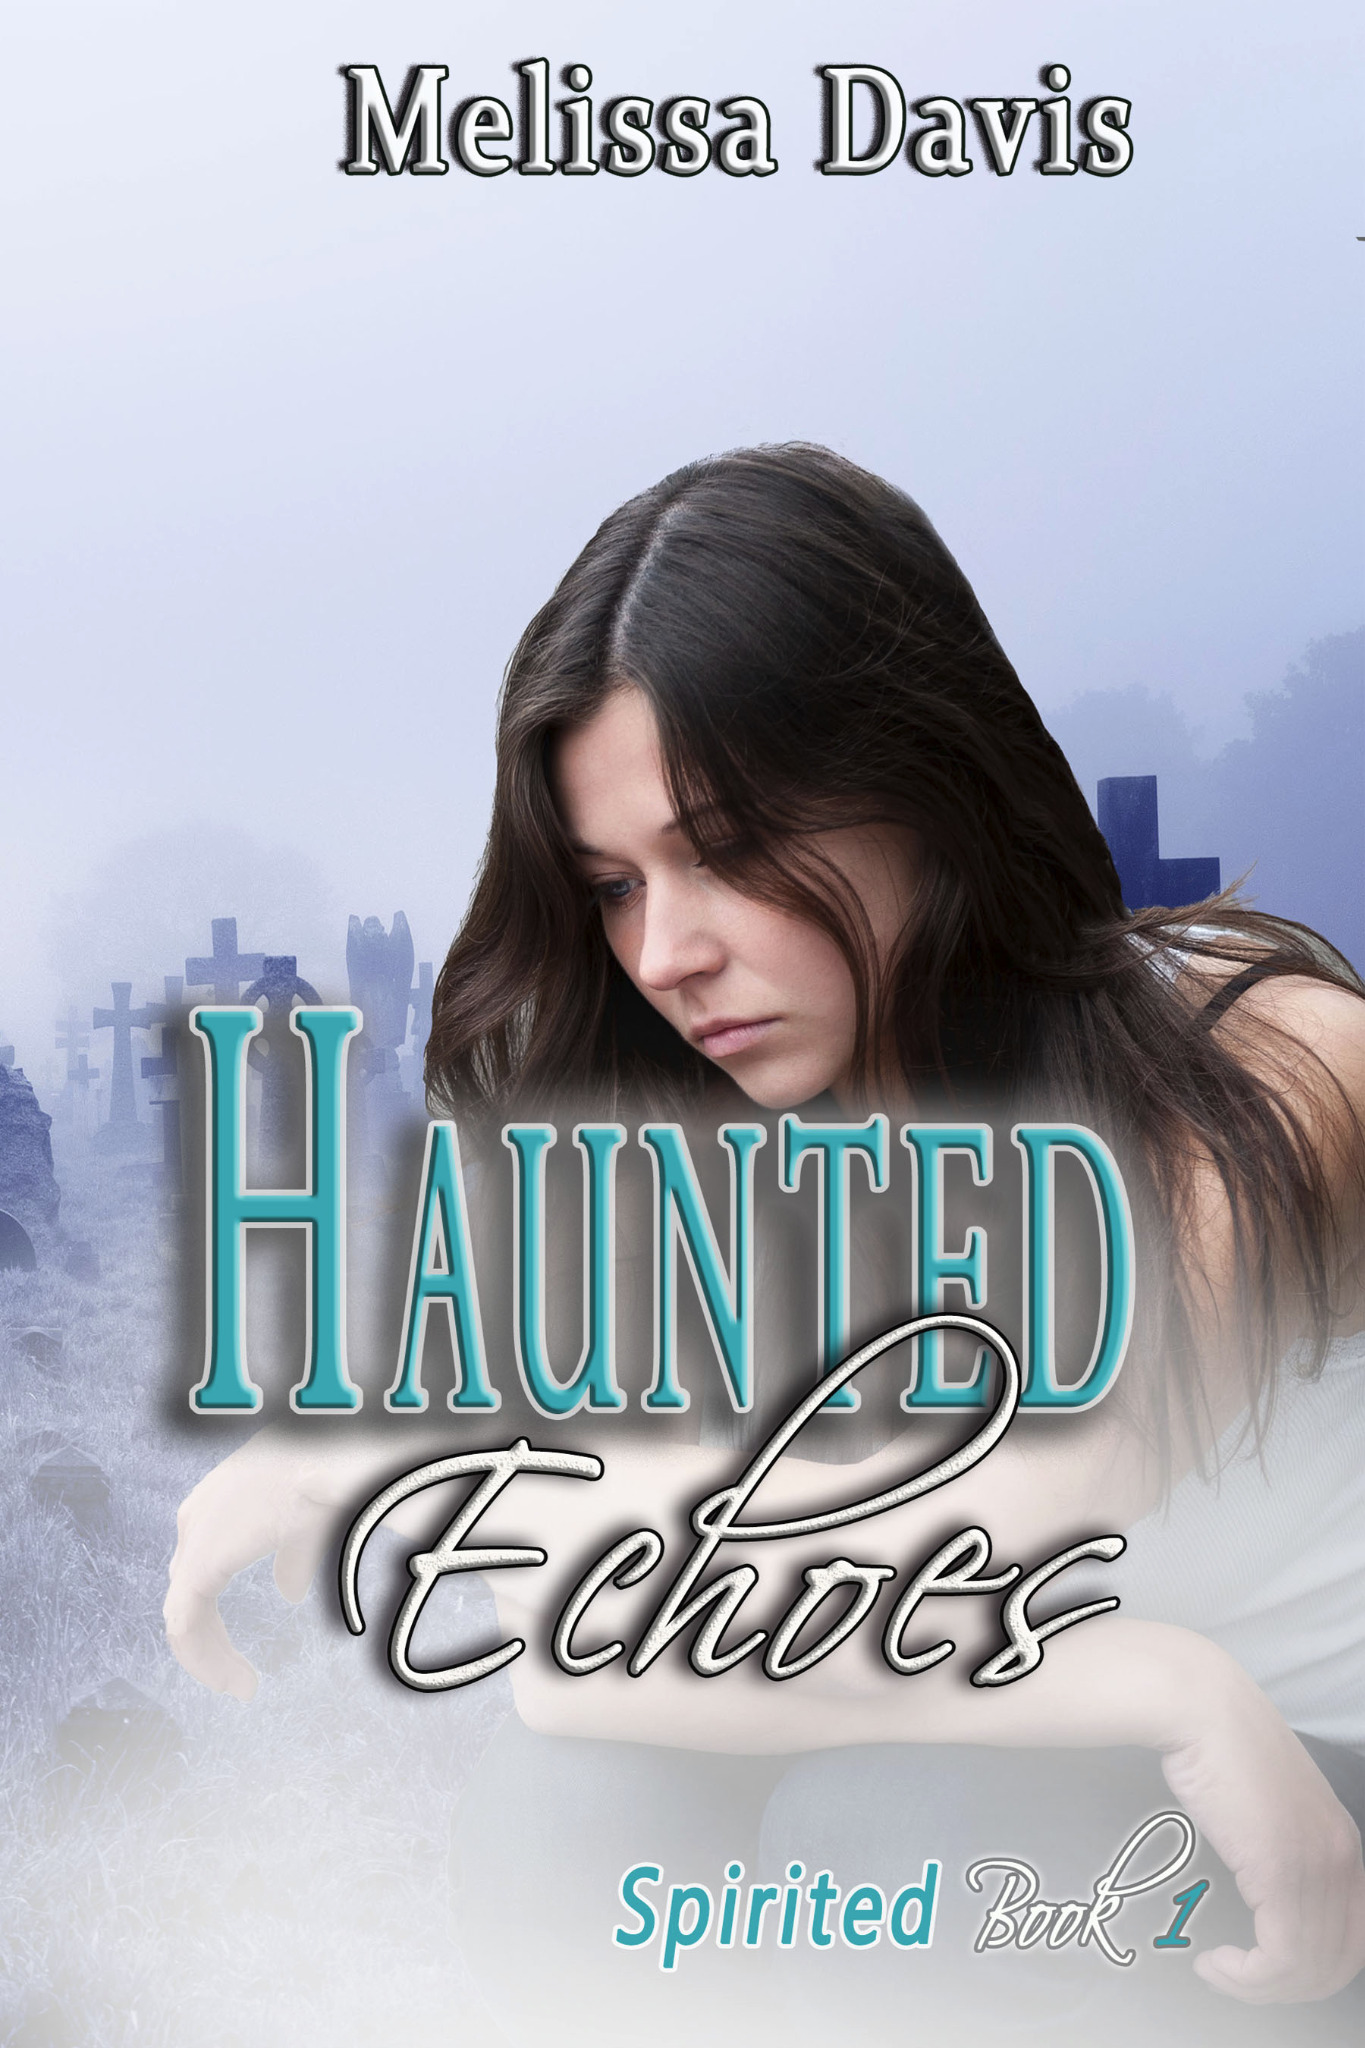 Haunted Echoes - Spirited Book 1